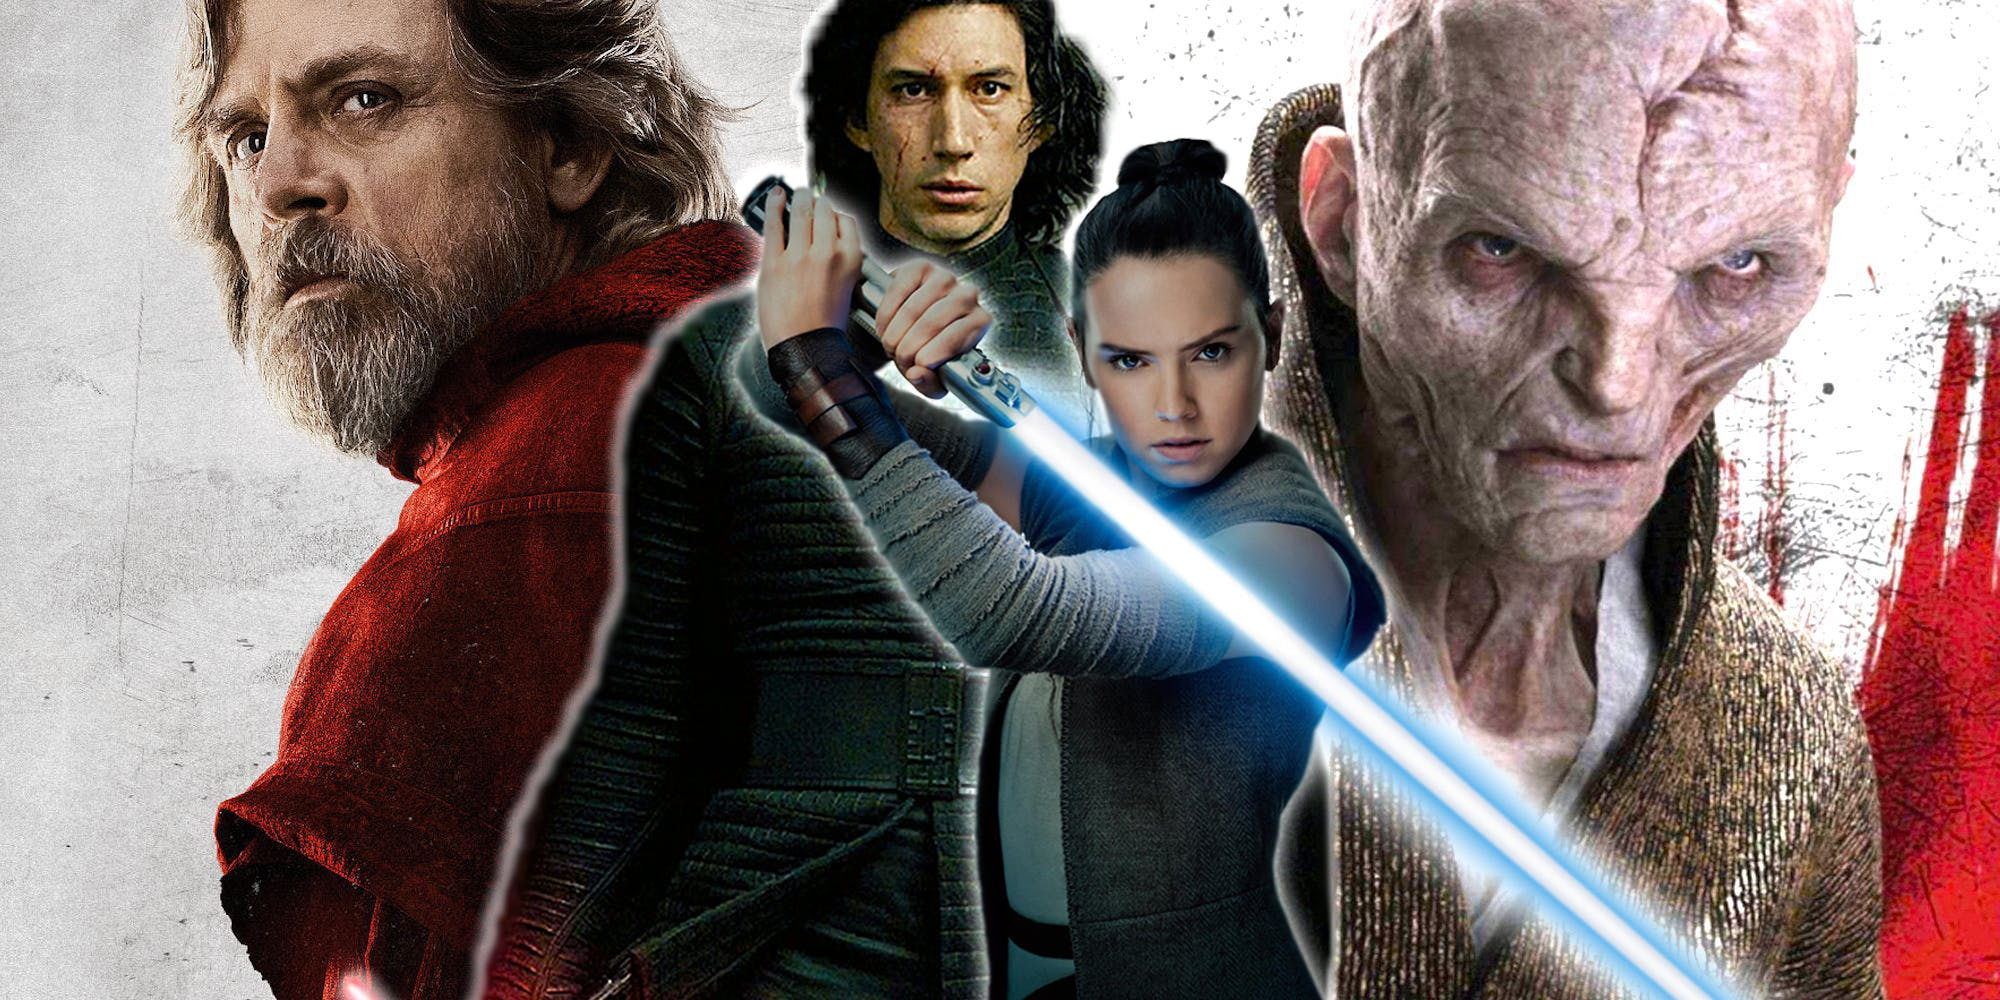 Star Wars: The Last Jedi Blasts Off With A Massive Opening Weekend